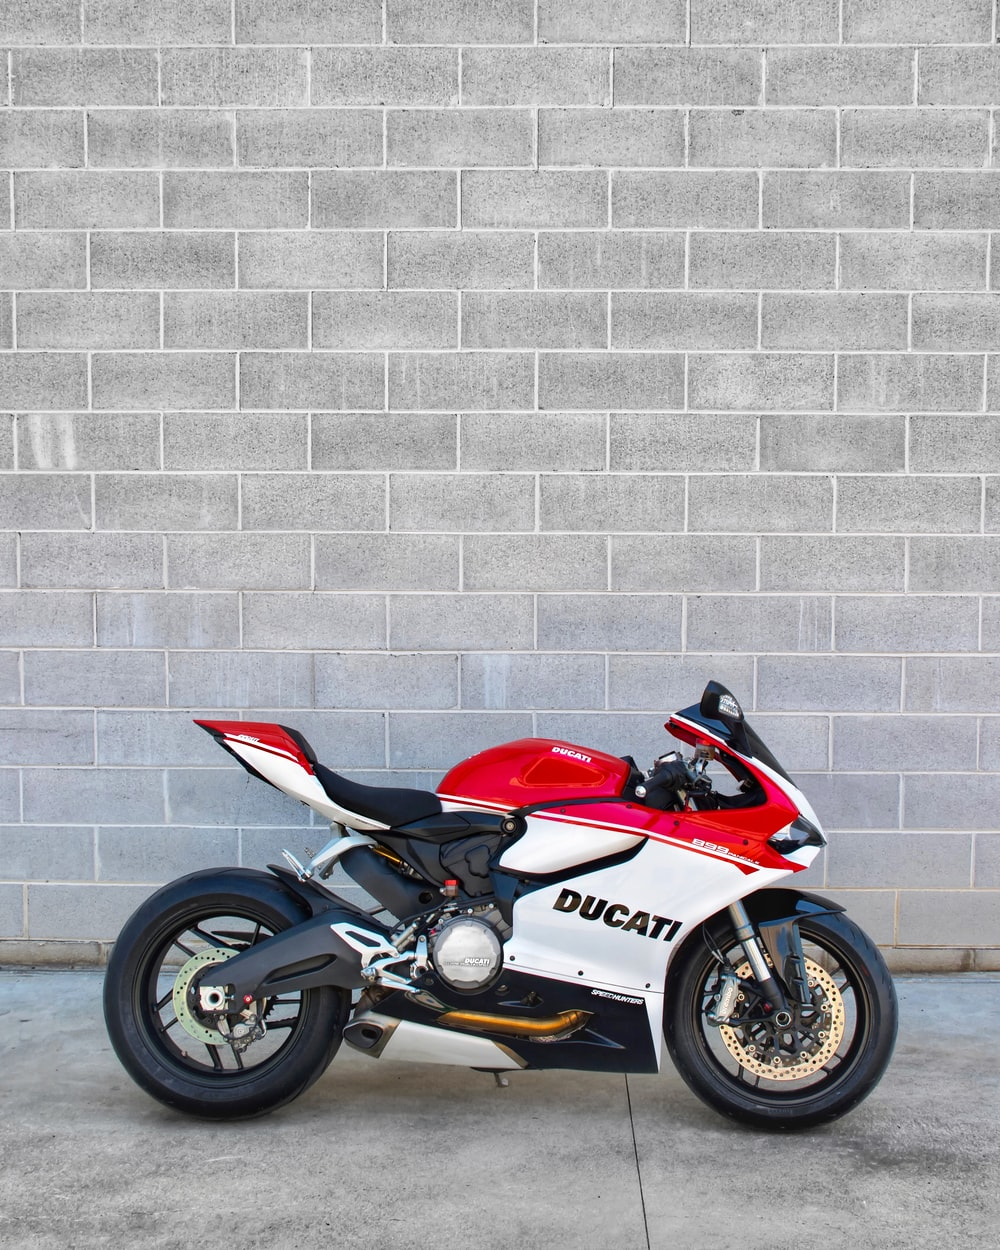 red and black sports bike parked beside white brick wall